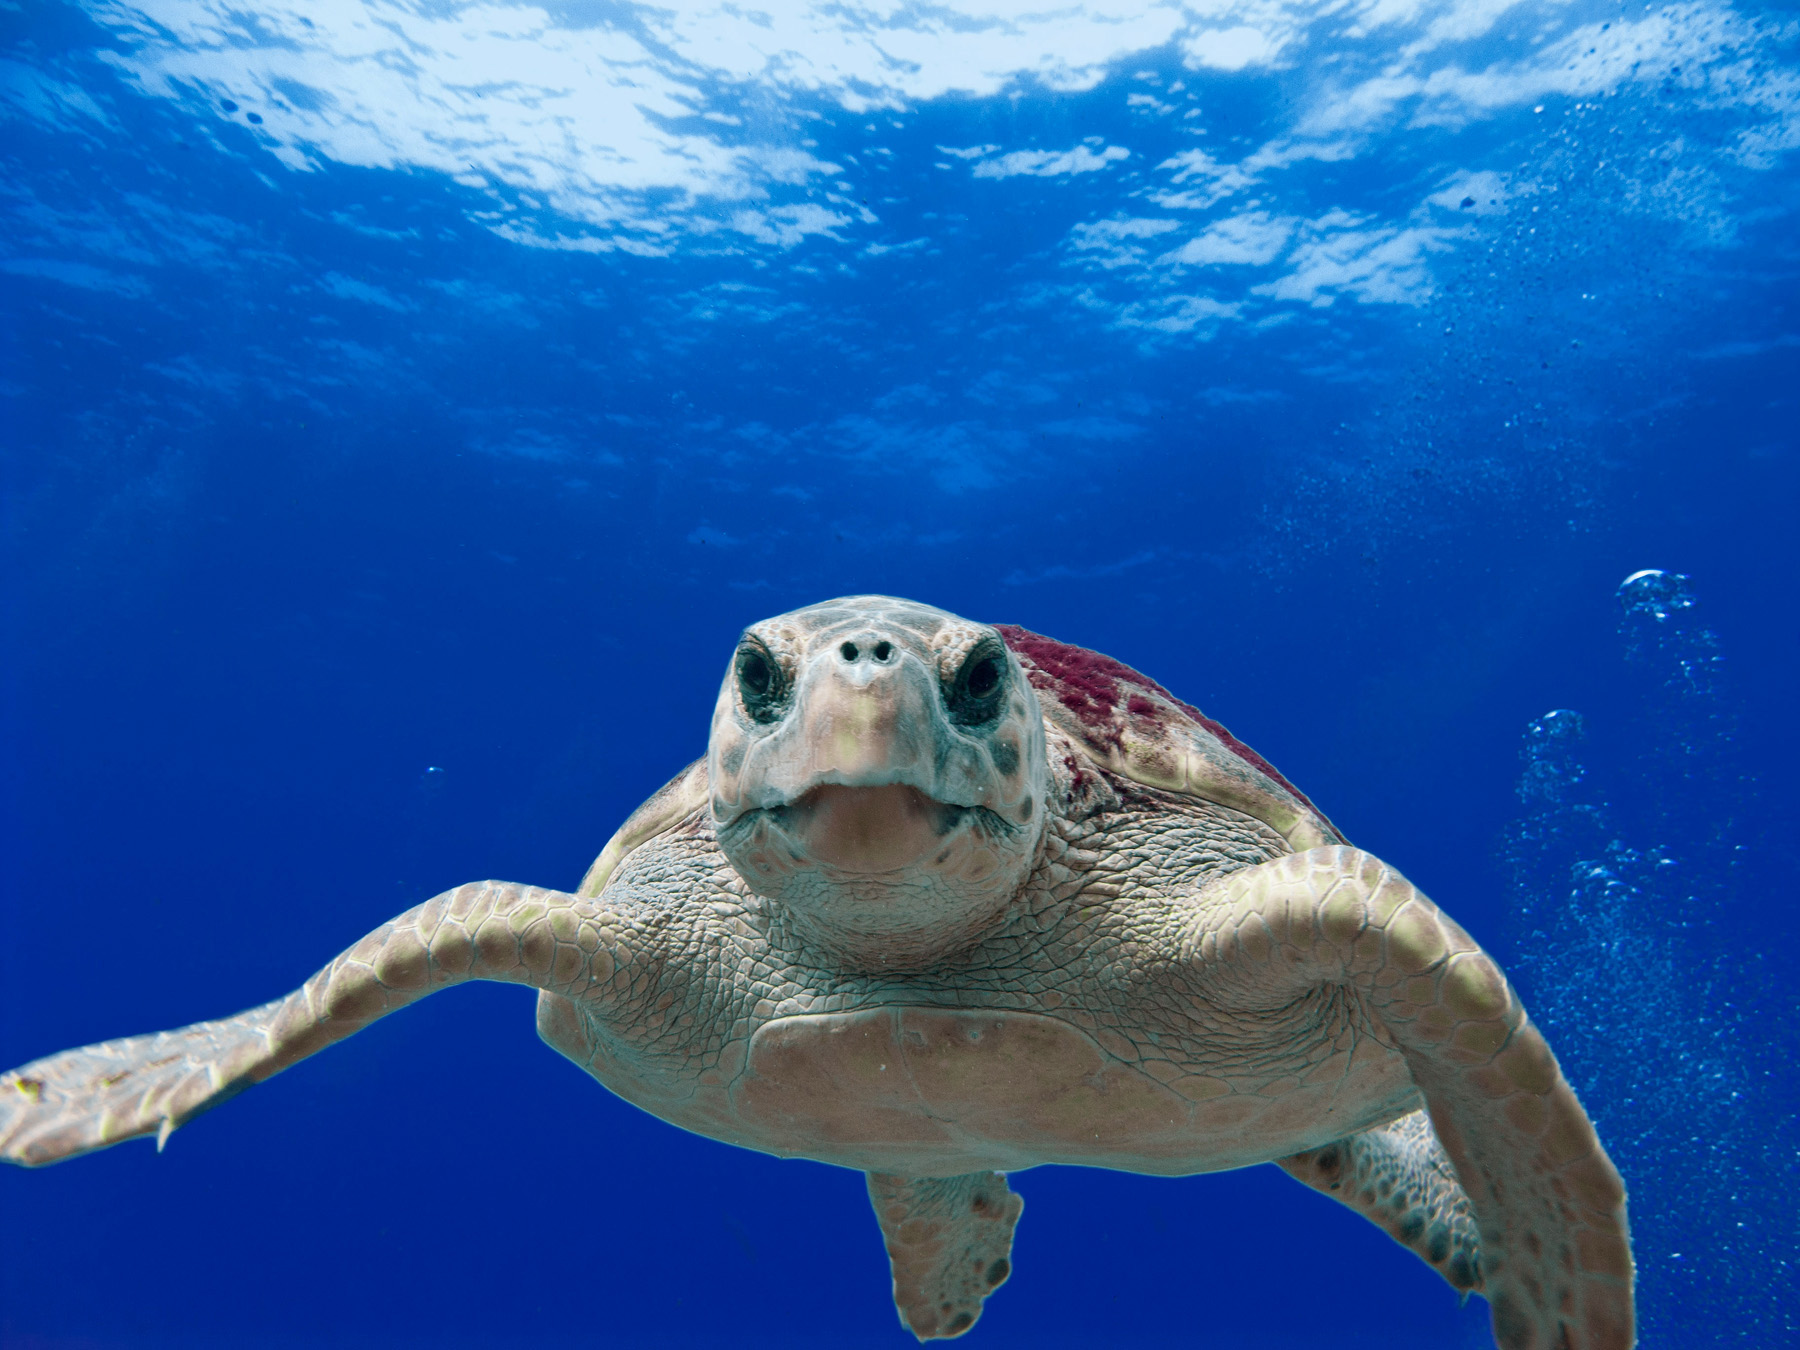 Sea Turtle in the Gulf of Mexico. Credit U.S. Dept of Commerce